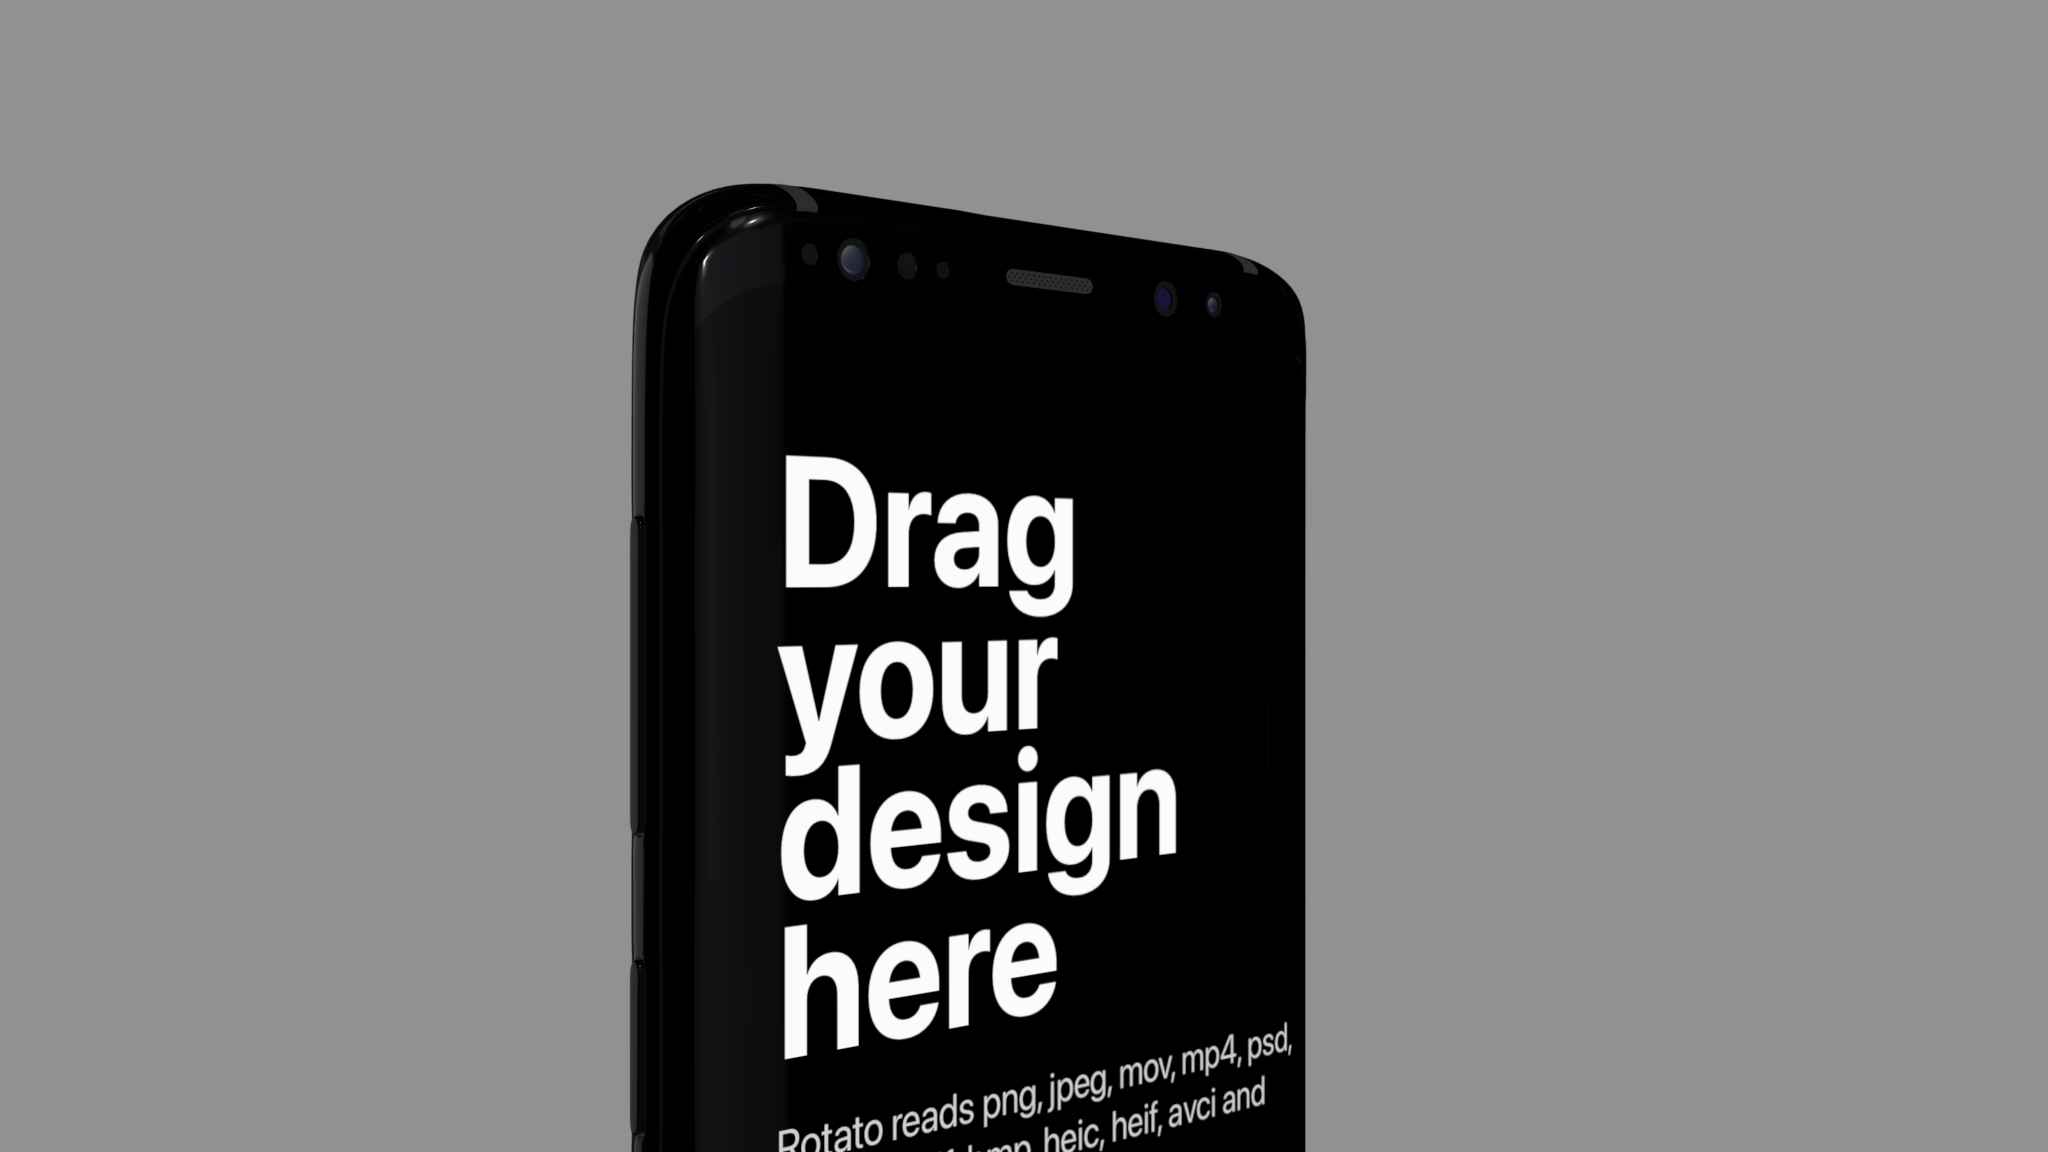 Rotated Android phone mockup showing top part of screen